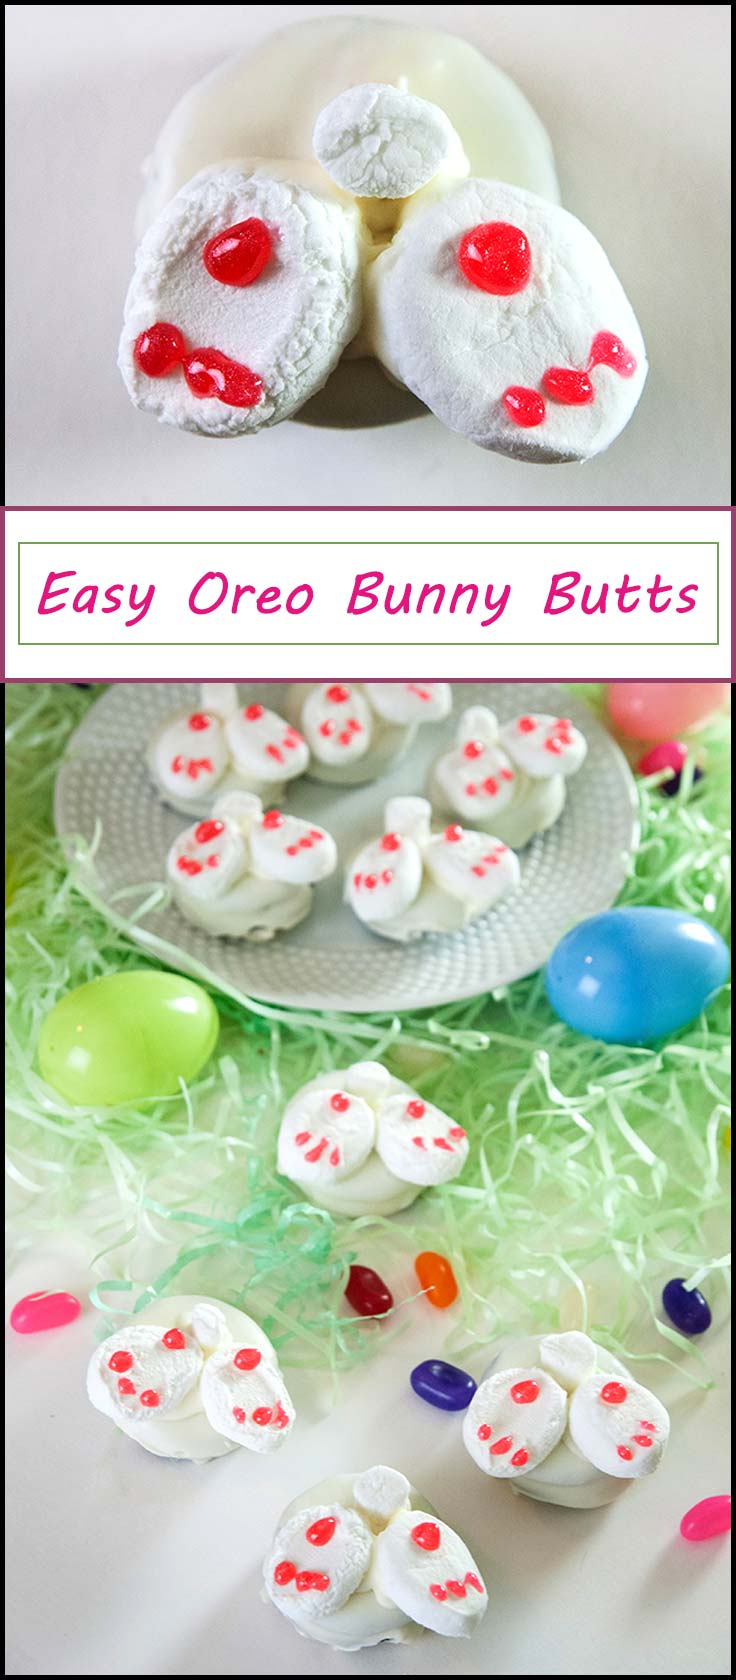 Easy Oreo Bunny Butts for Easter dessert or an Easter treat. Perfect easy Easter cookies from www.seasonedsprinkles.com